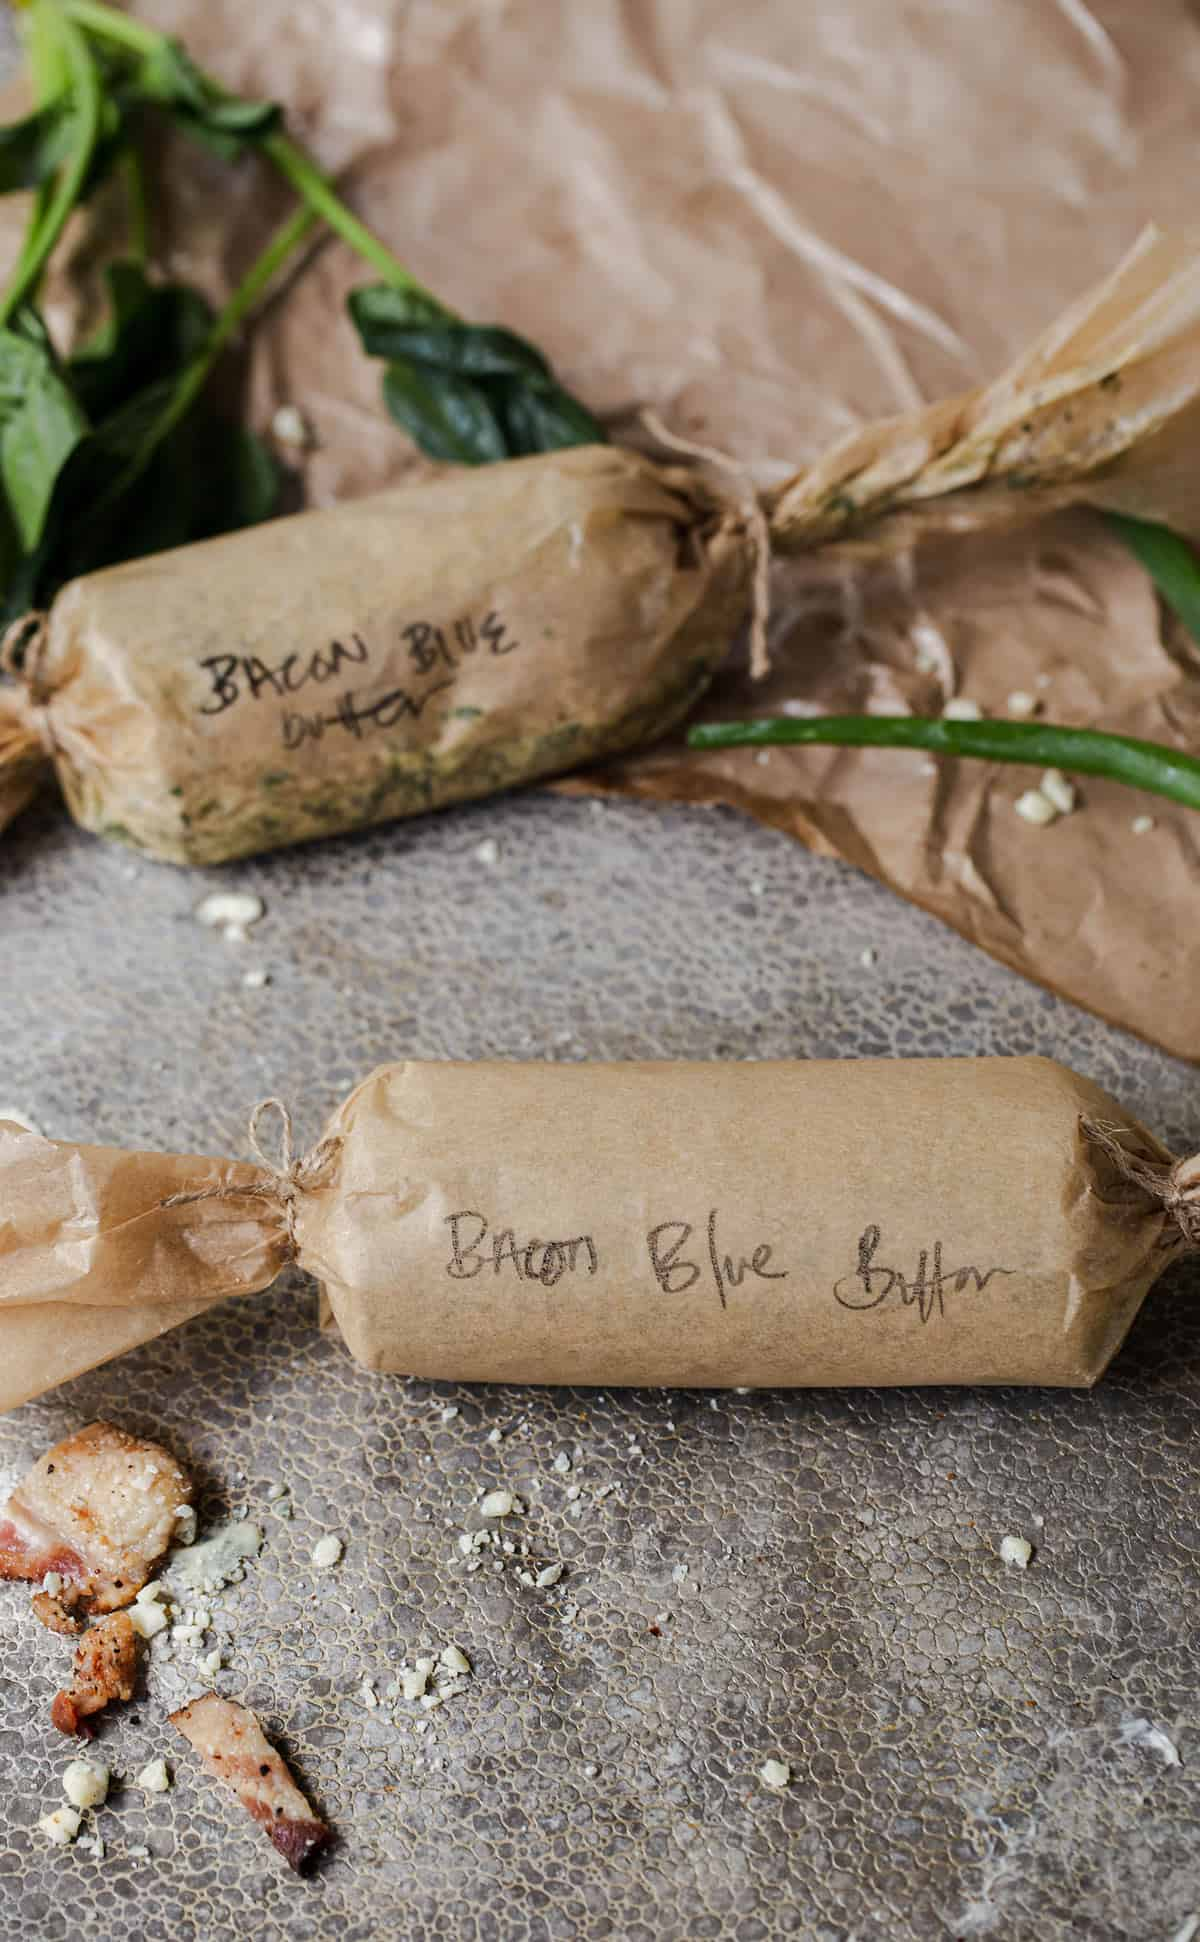 Bacon Blue Cheese Compound Butter logs wrapped and refrigerated to use as needed